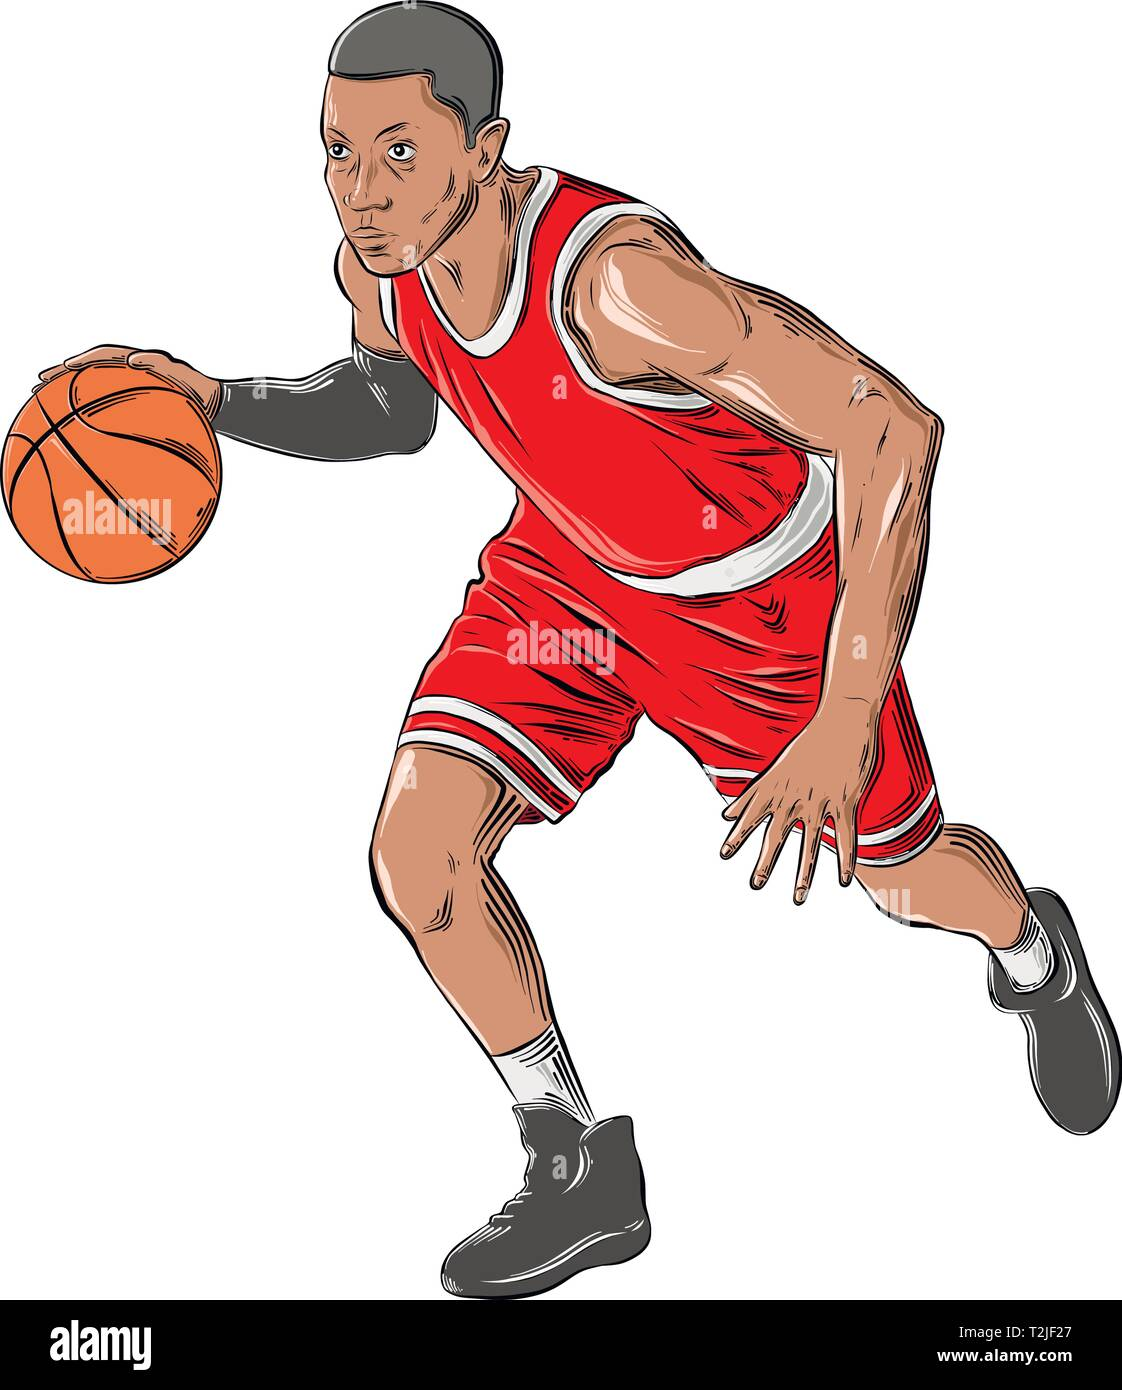 Hand Drawn Sketch Of Basketball Player In Color Isolated On White Background Detailed Vintage Style Drawing Vector Illustration Stock Vector Image Art Alamy